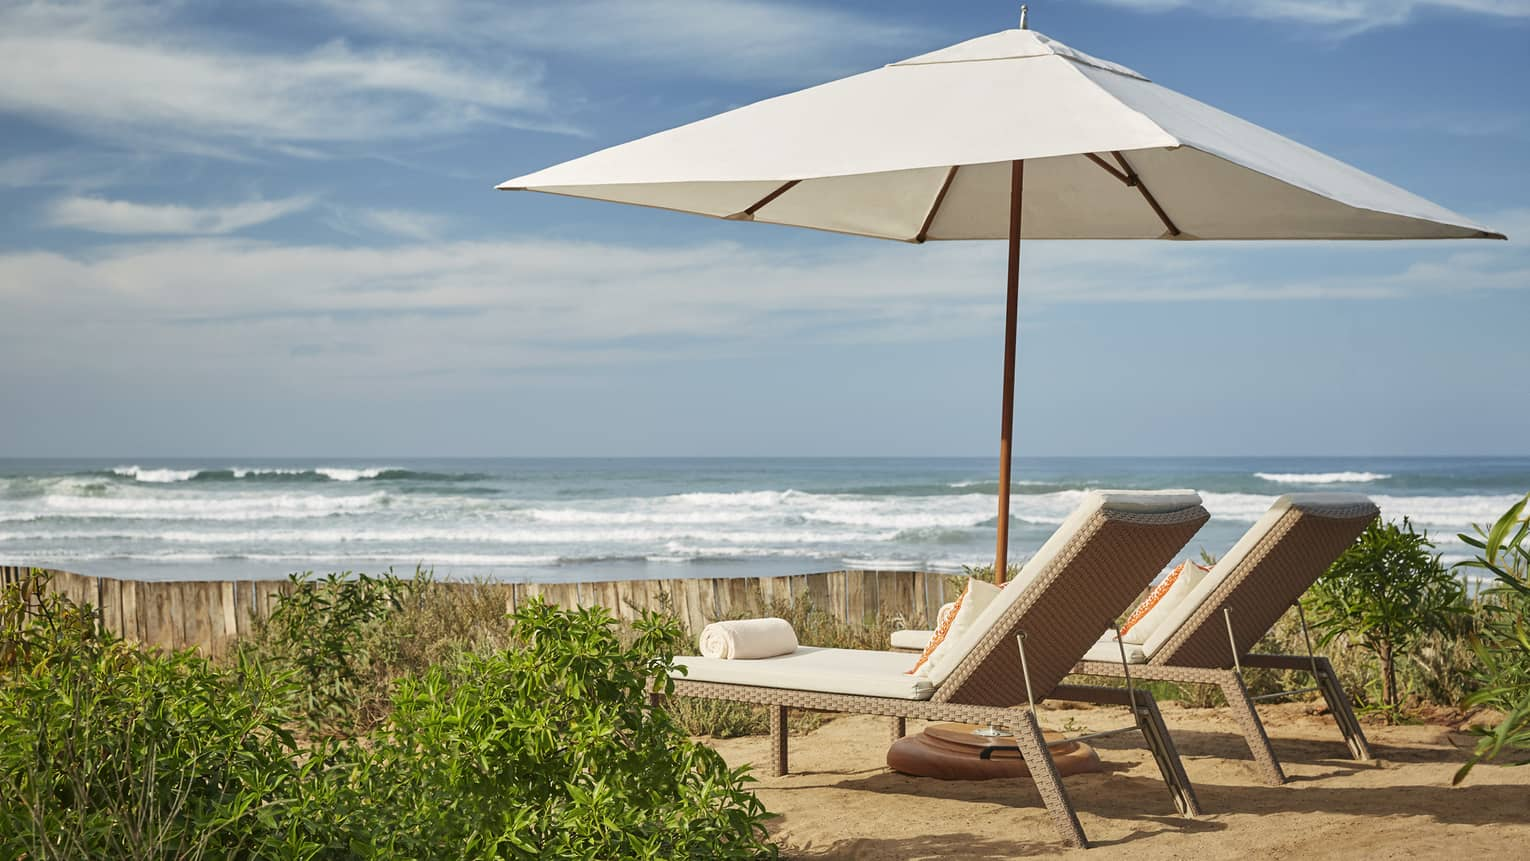 Lounge chairs under white beach umbrella on golden sand, Atlantic Ocean